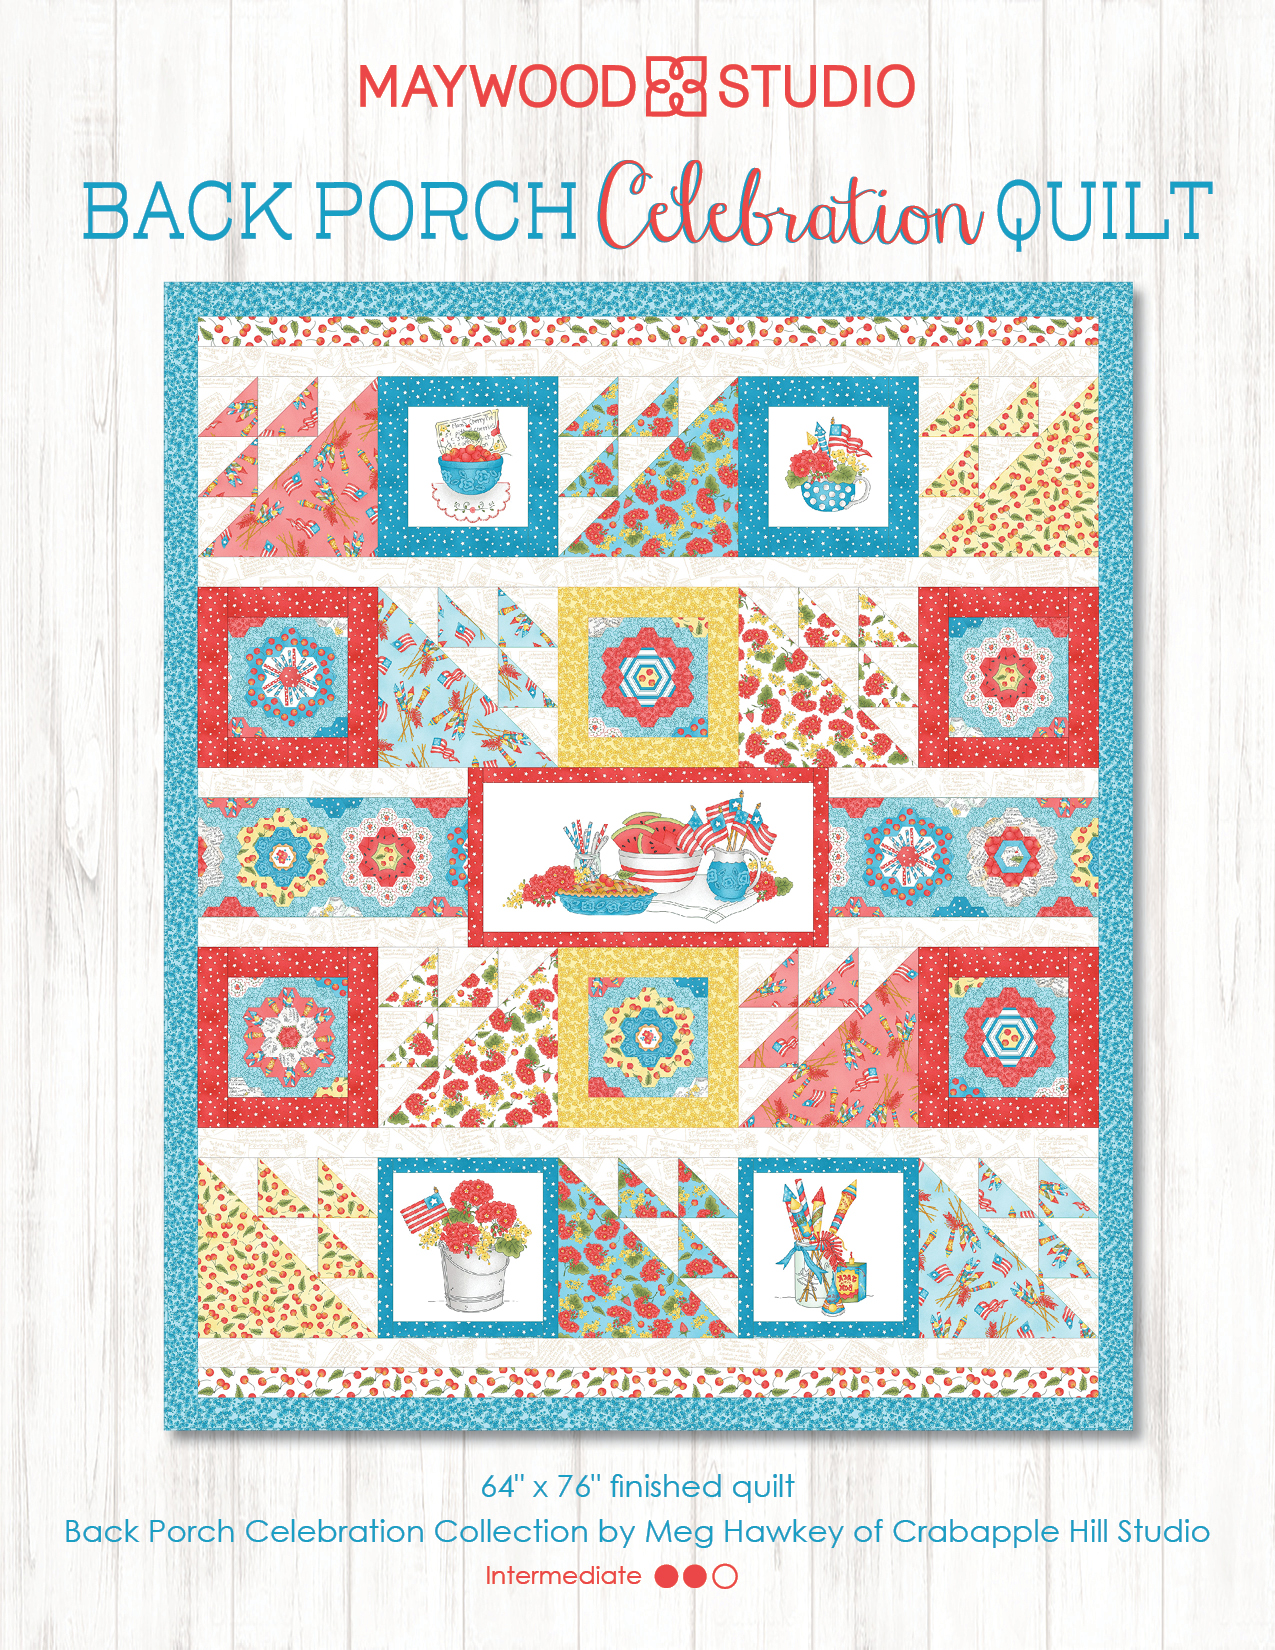 Back Porch Celebration Quilt